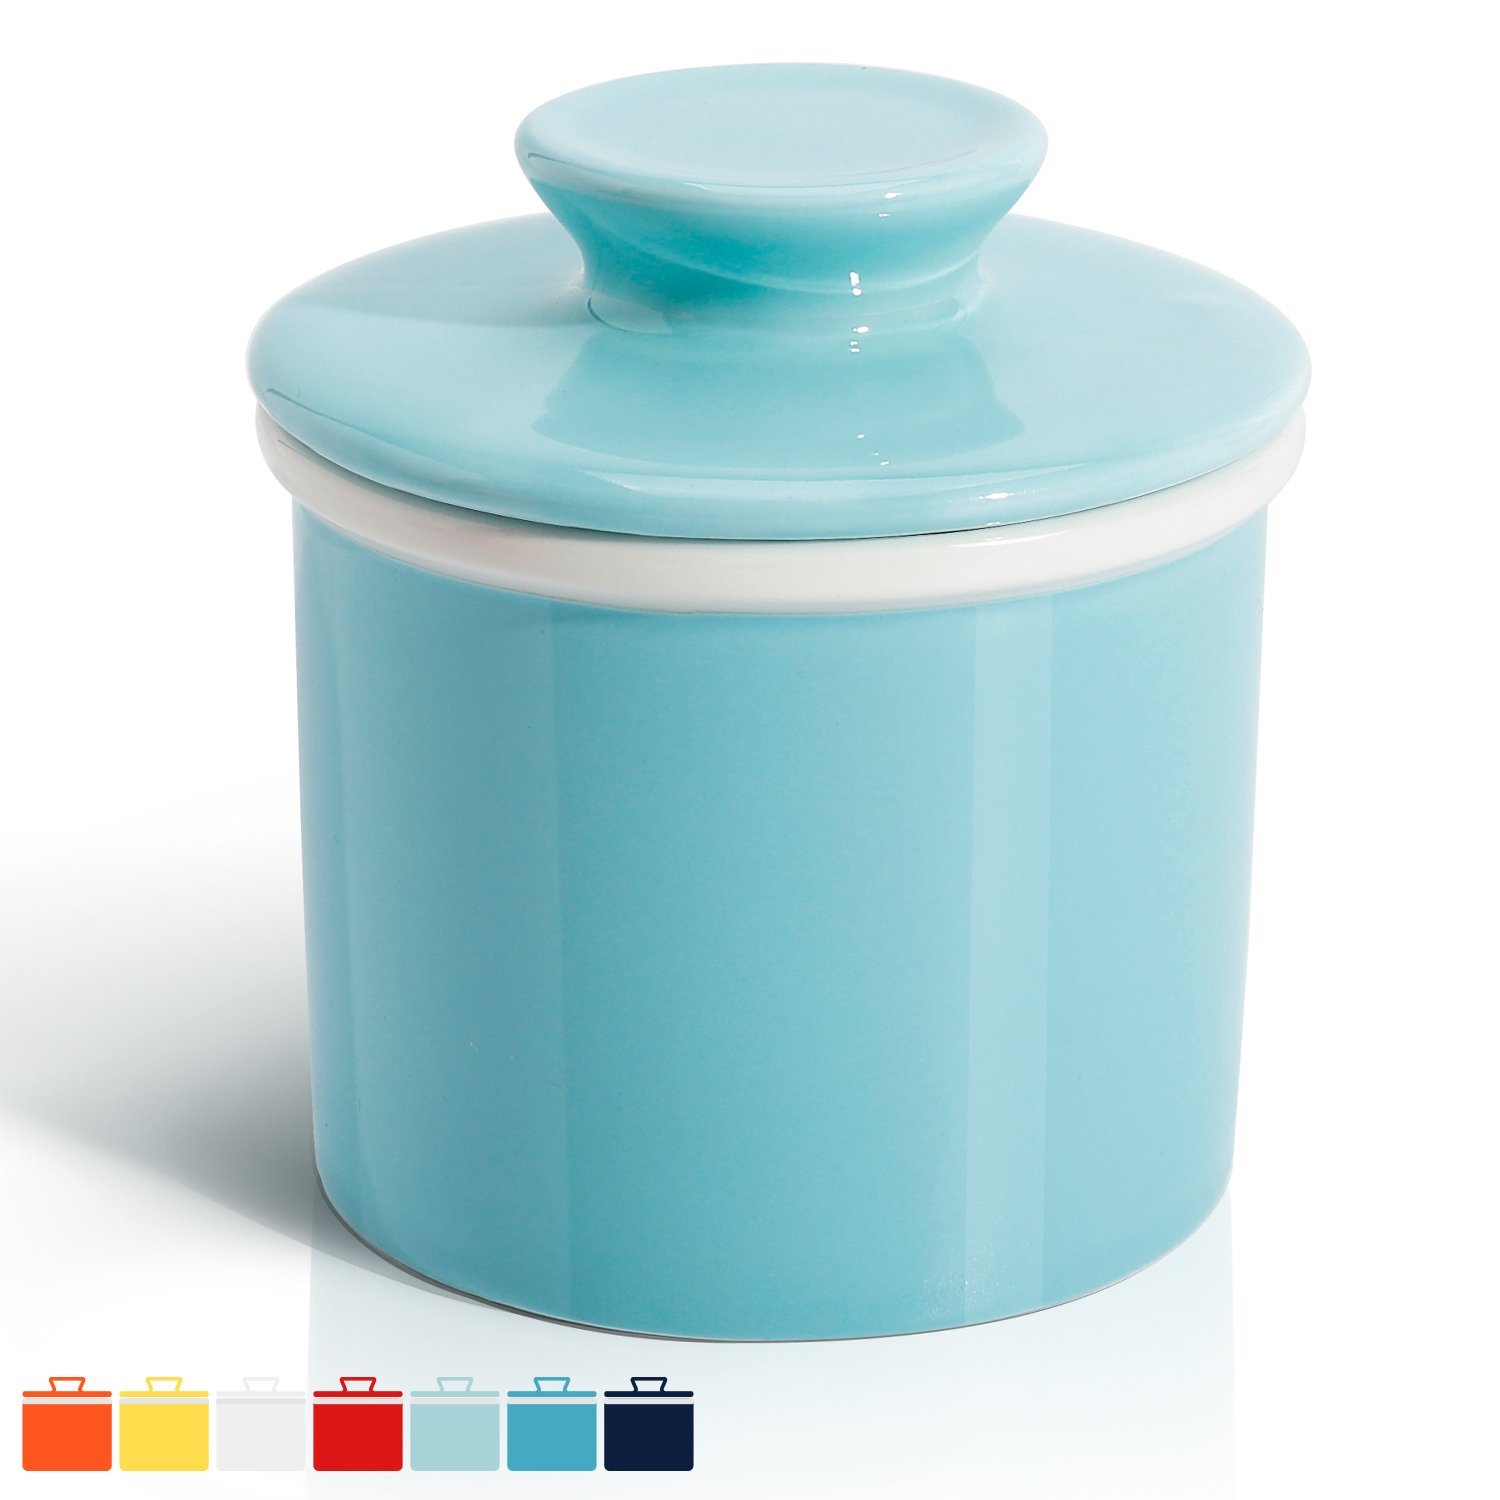 Sweese 3109 Porcelain Butter Keeper Crock - French Butter Dish - No More Hard Butter - Perfect Spreadable Consistency, Turquoise